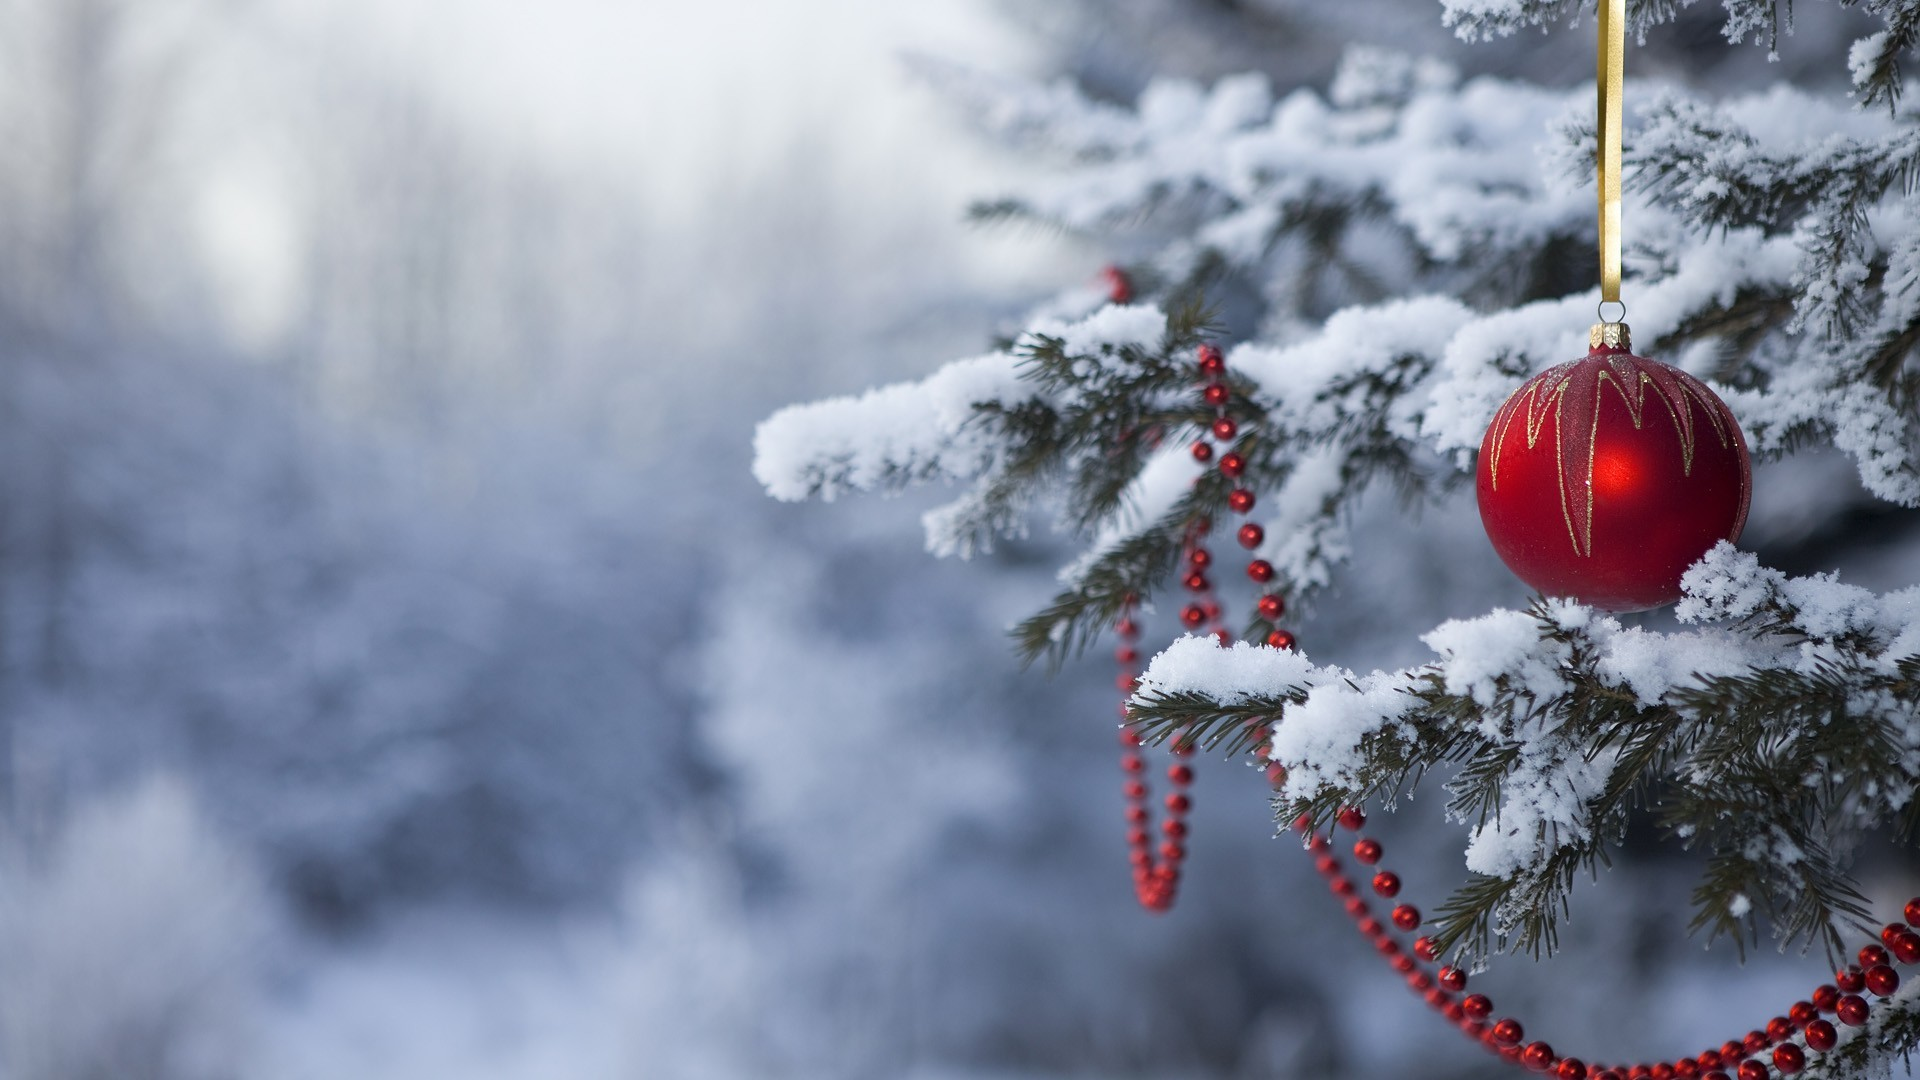 Christmas Wallpaper 1920x1080 (80+ images)